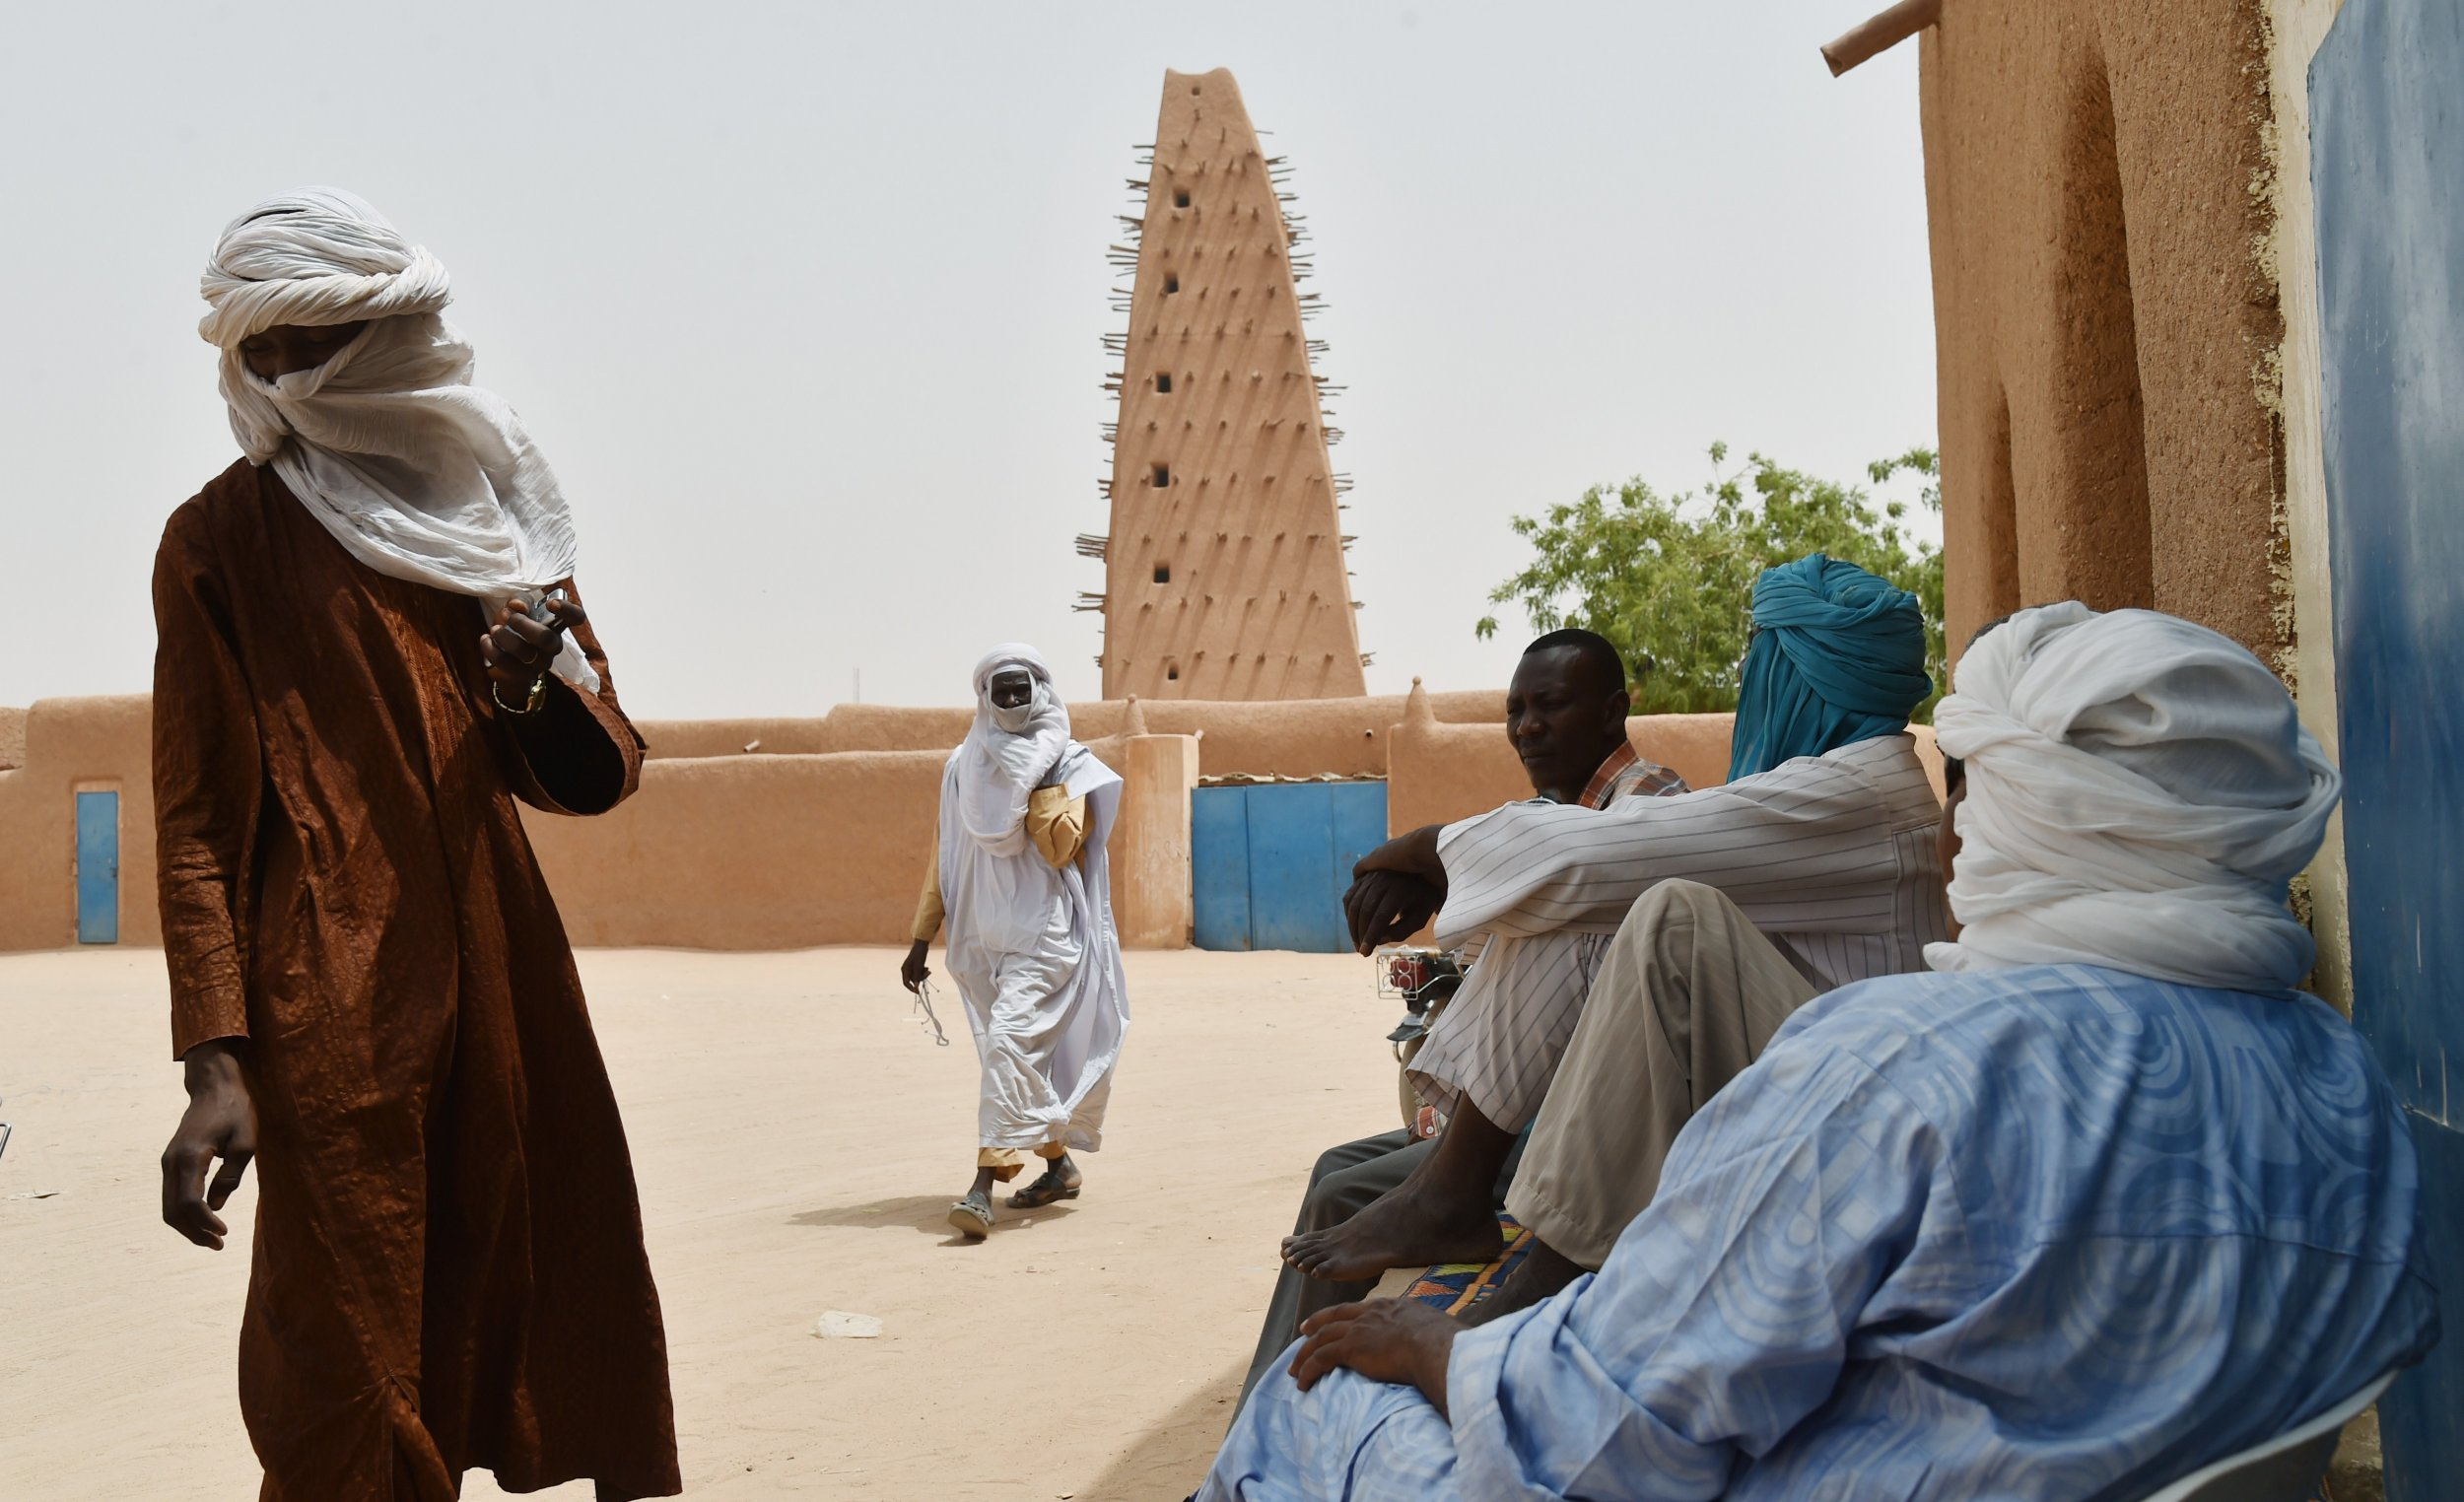 Nigeriens stand near a mosque in Agadez.